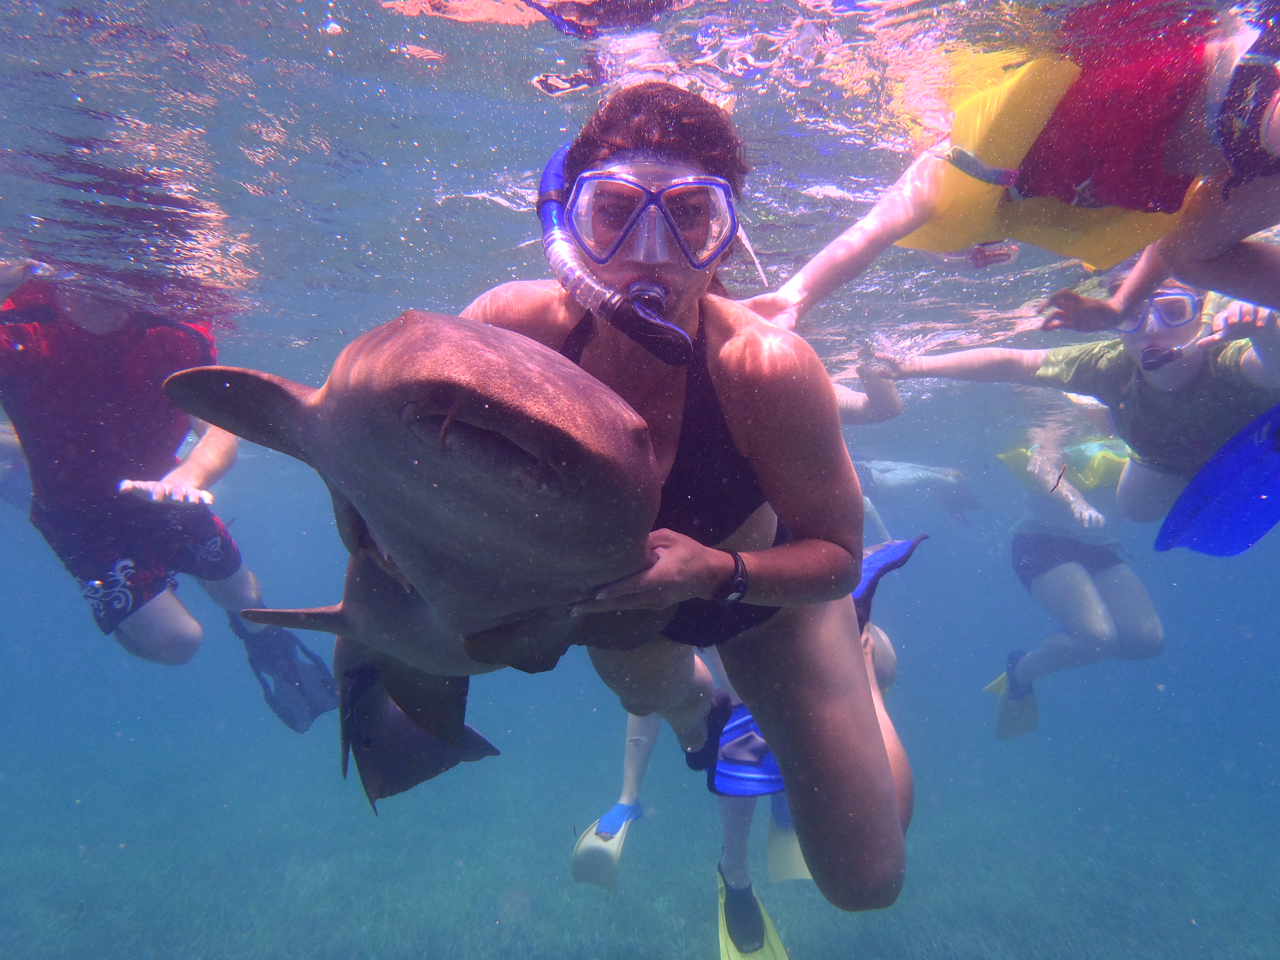 Photos of snorkeling and fishing in Belize shark Ray alley and Hol chan - 1 of 114